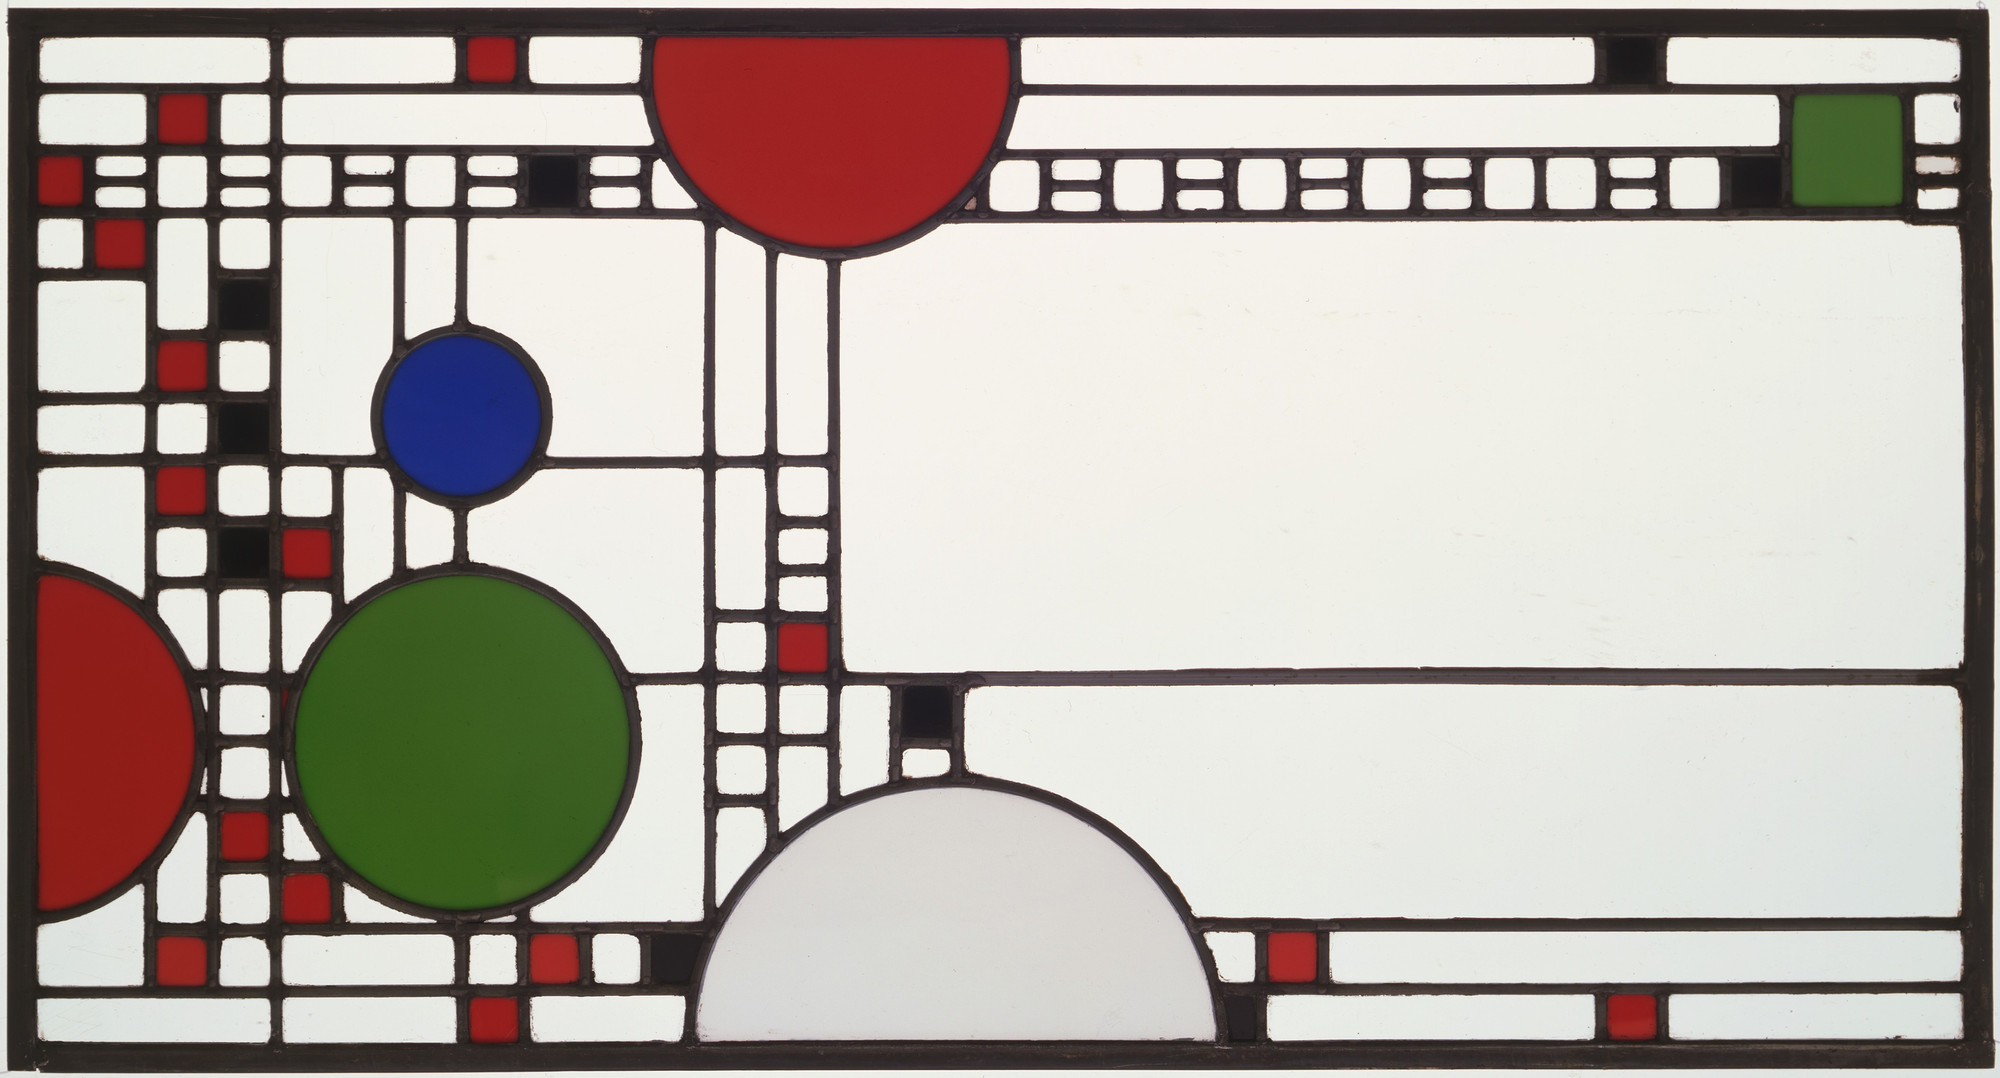 Frank Lloyd Wright. Clerestory windows from the Avery Coonley Playhouse, Riverside, IL. 1912